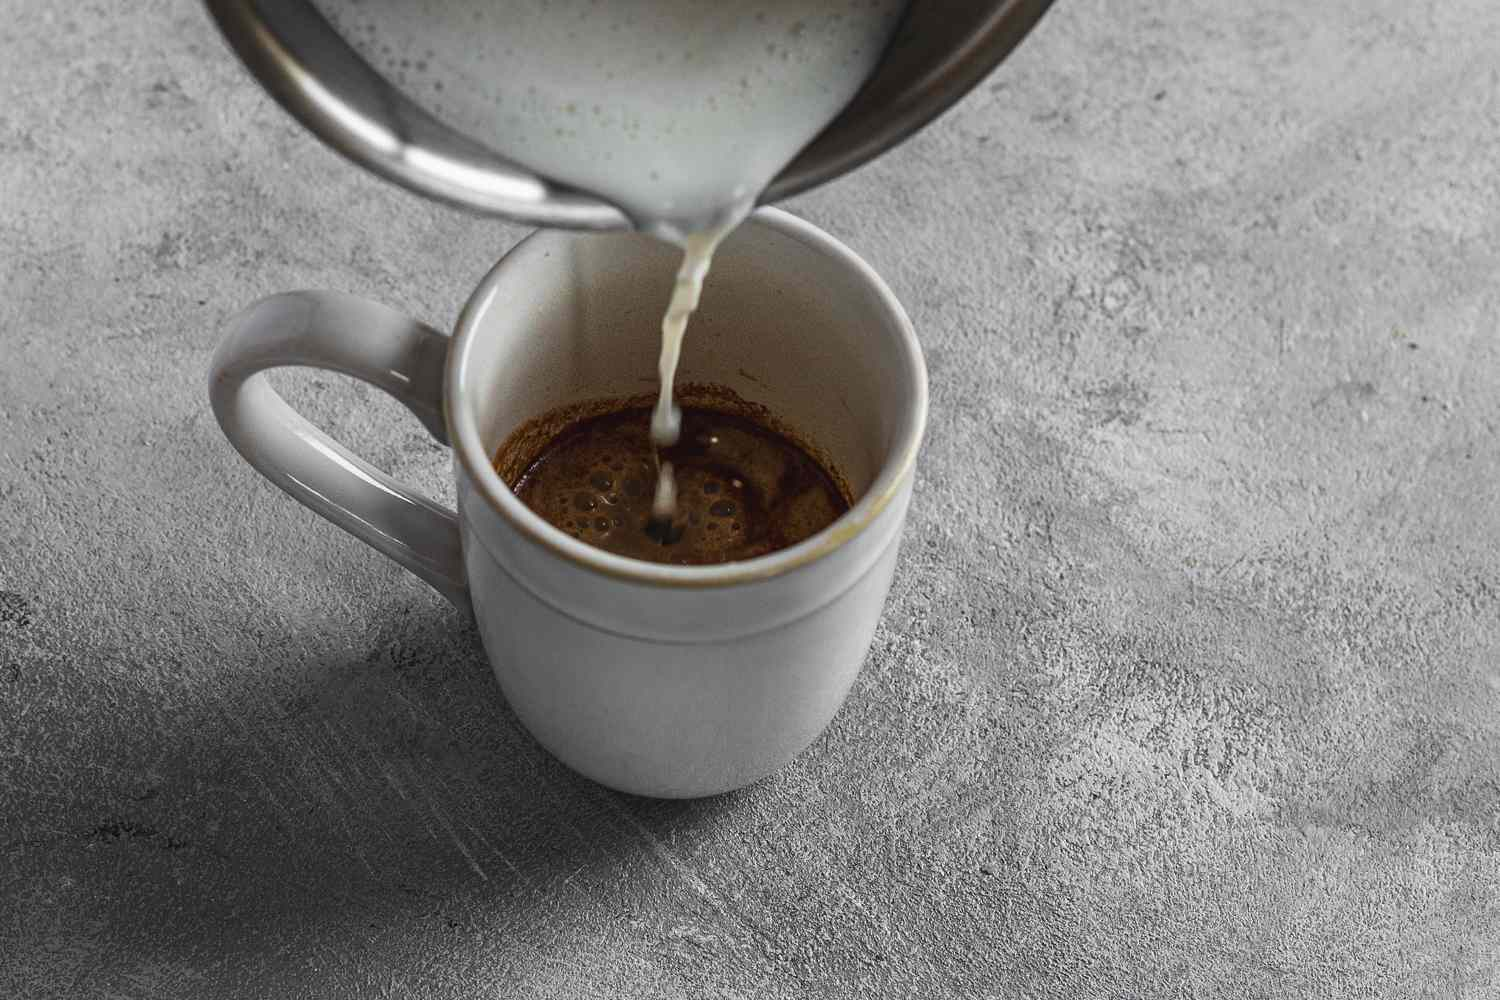 milk poured over coffee mix in a cup